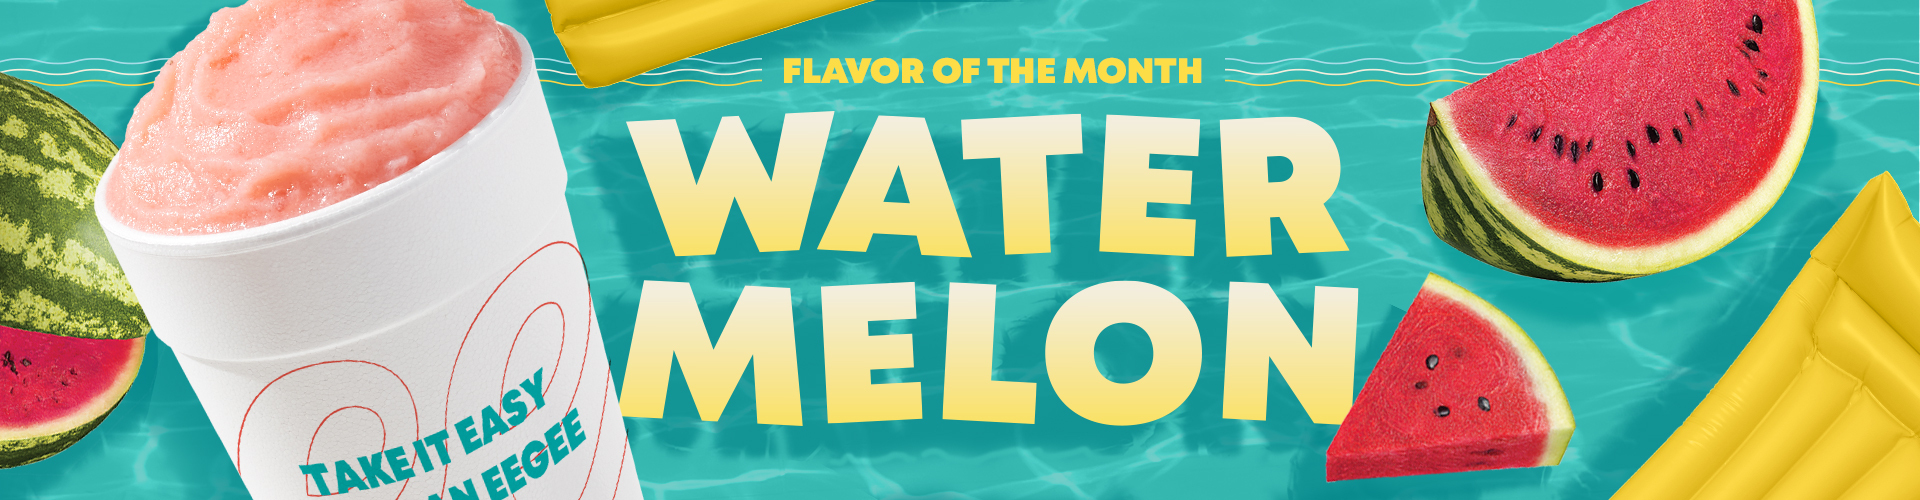 Water Melon - May Flavor of the Month